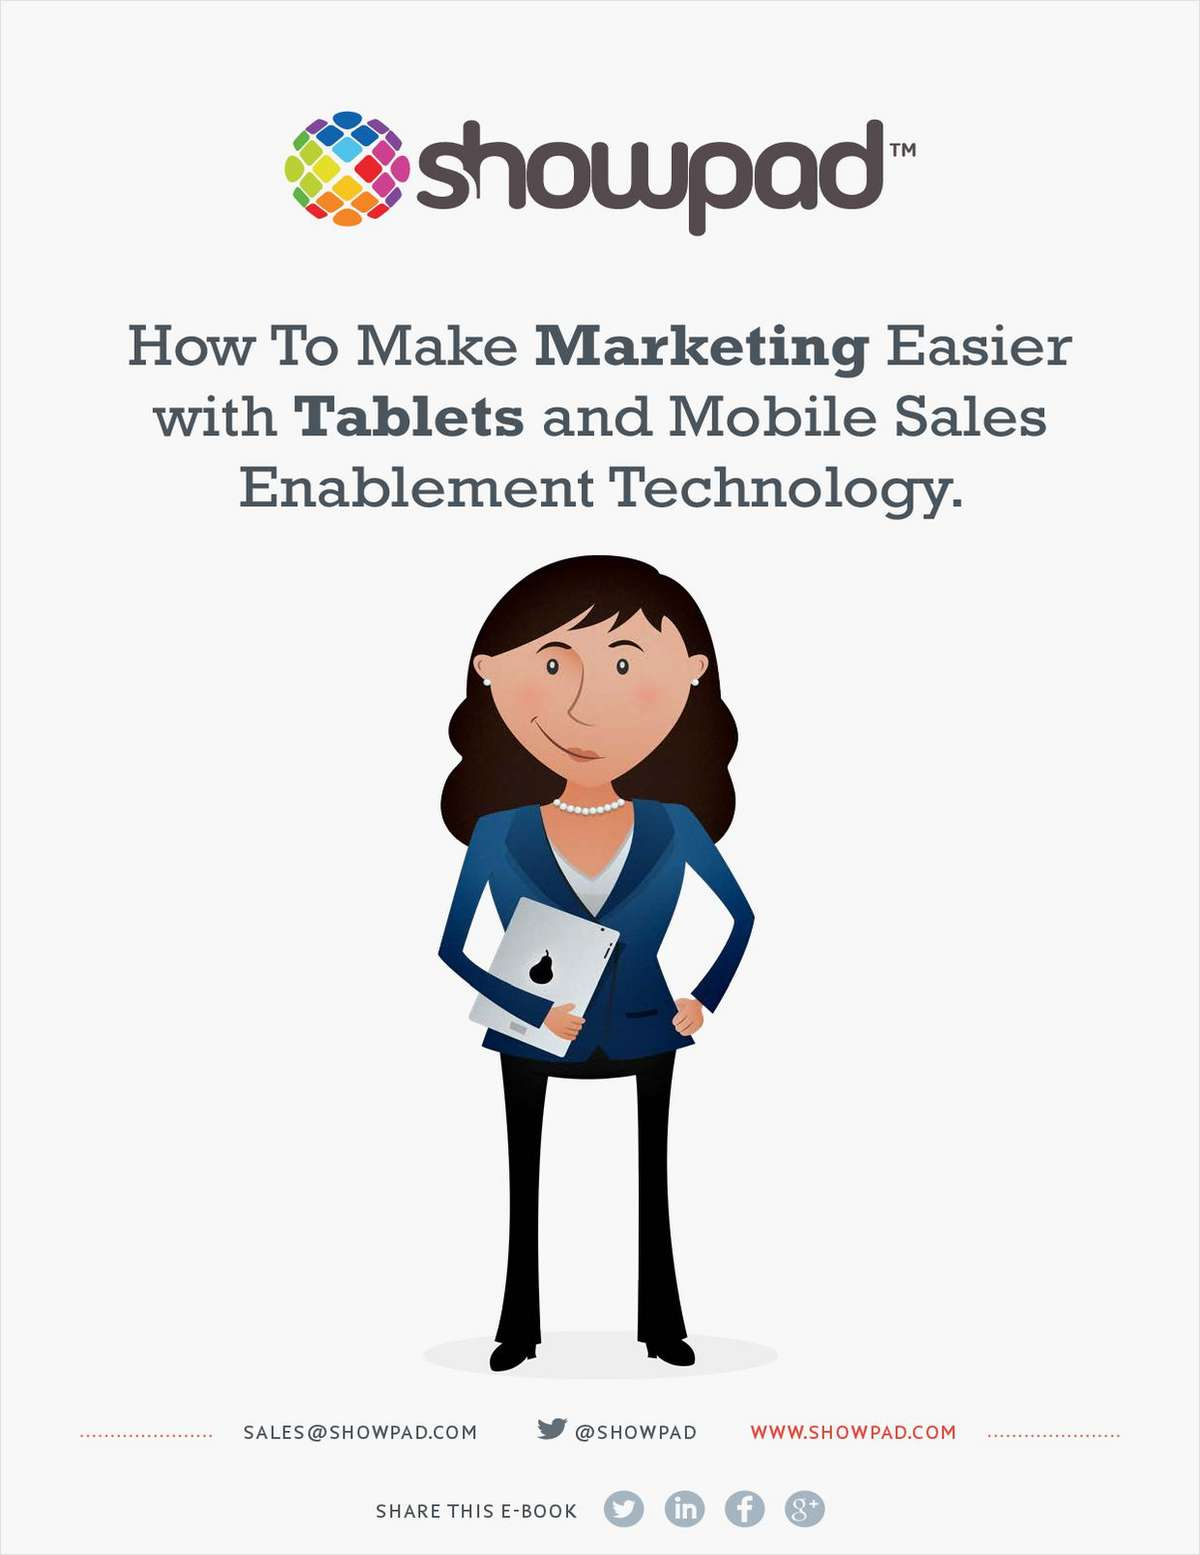 How to Make Marketing Easier with Tablets and Mobile Sales Enablement Technology